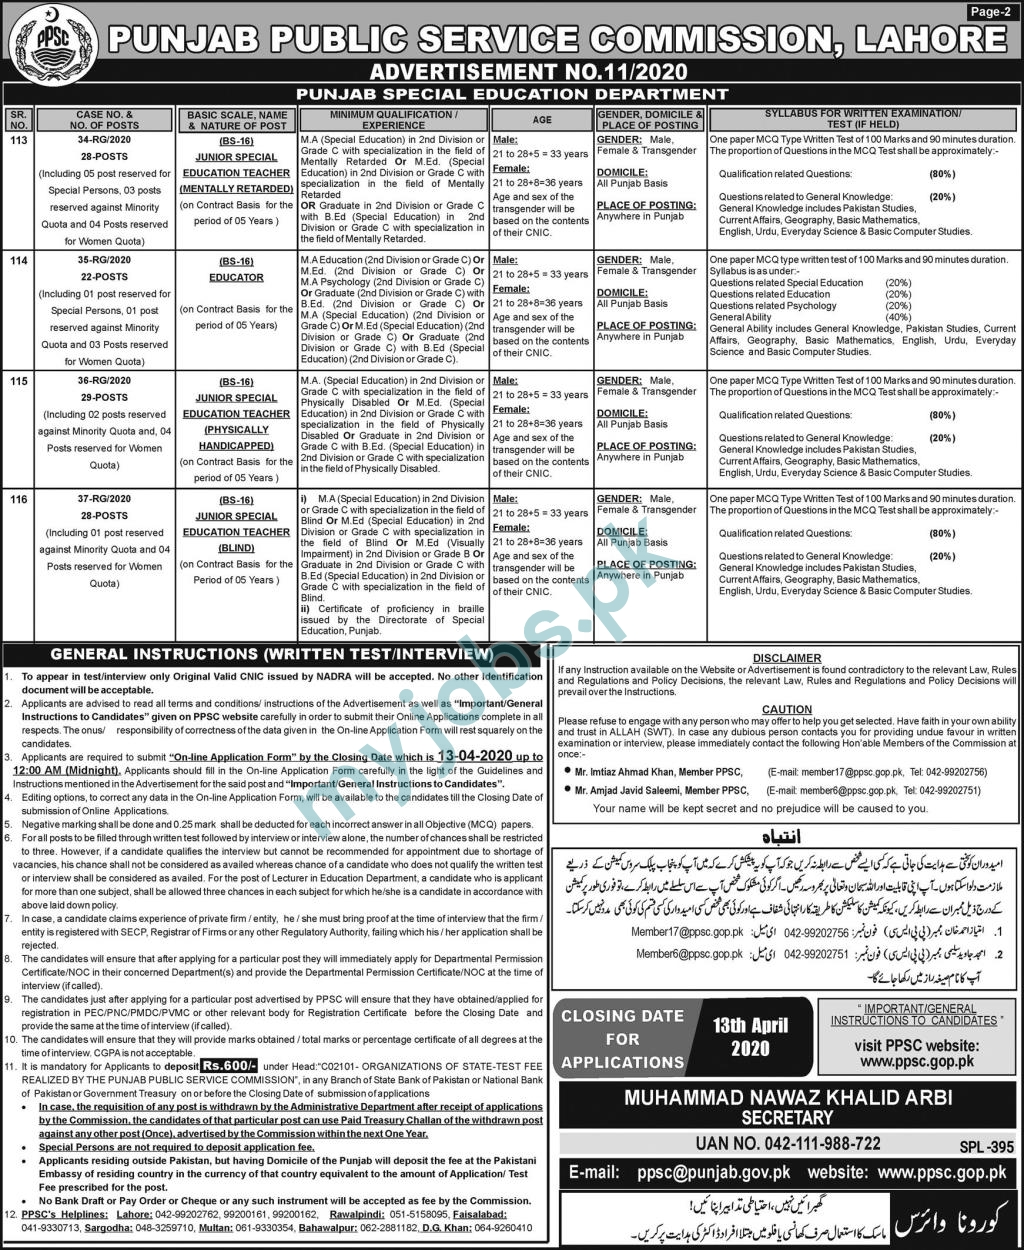 PPSC Jobs March 2020 Latest Advertisement PPSC Ad 11/2020